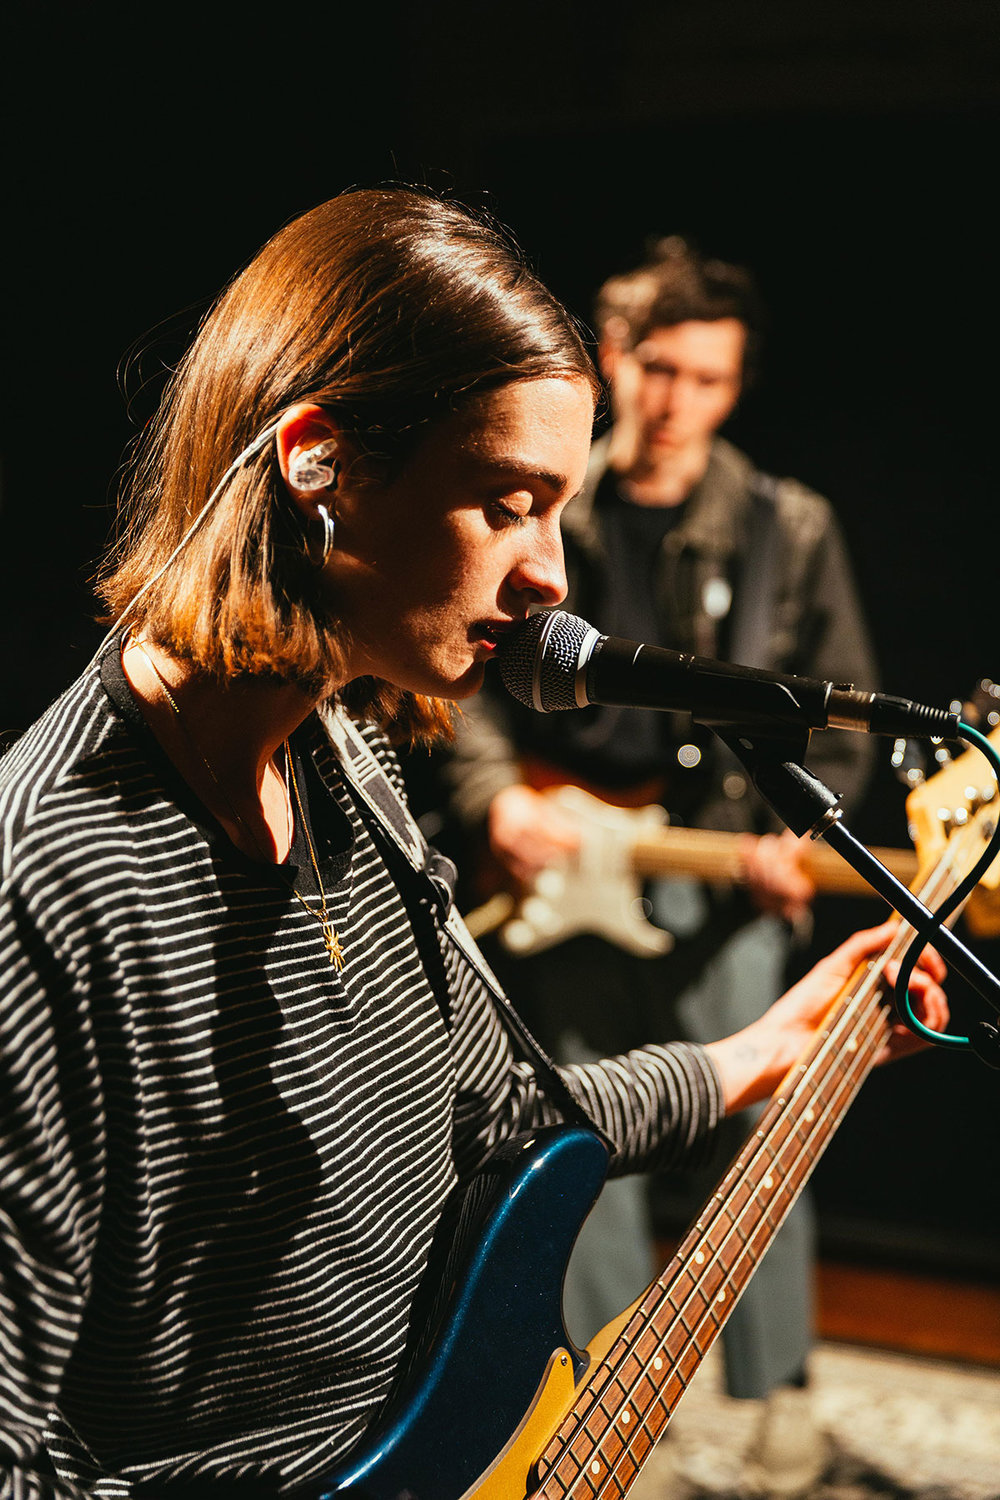 Be-Forest-on-Audiotree-Live-19.jpg